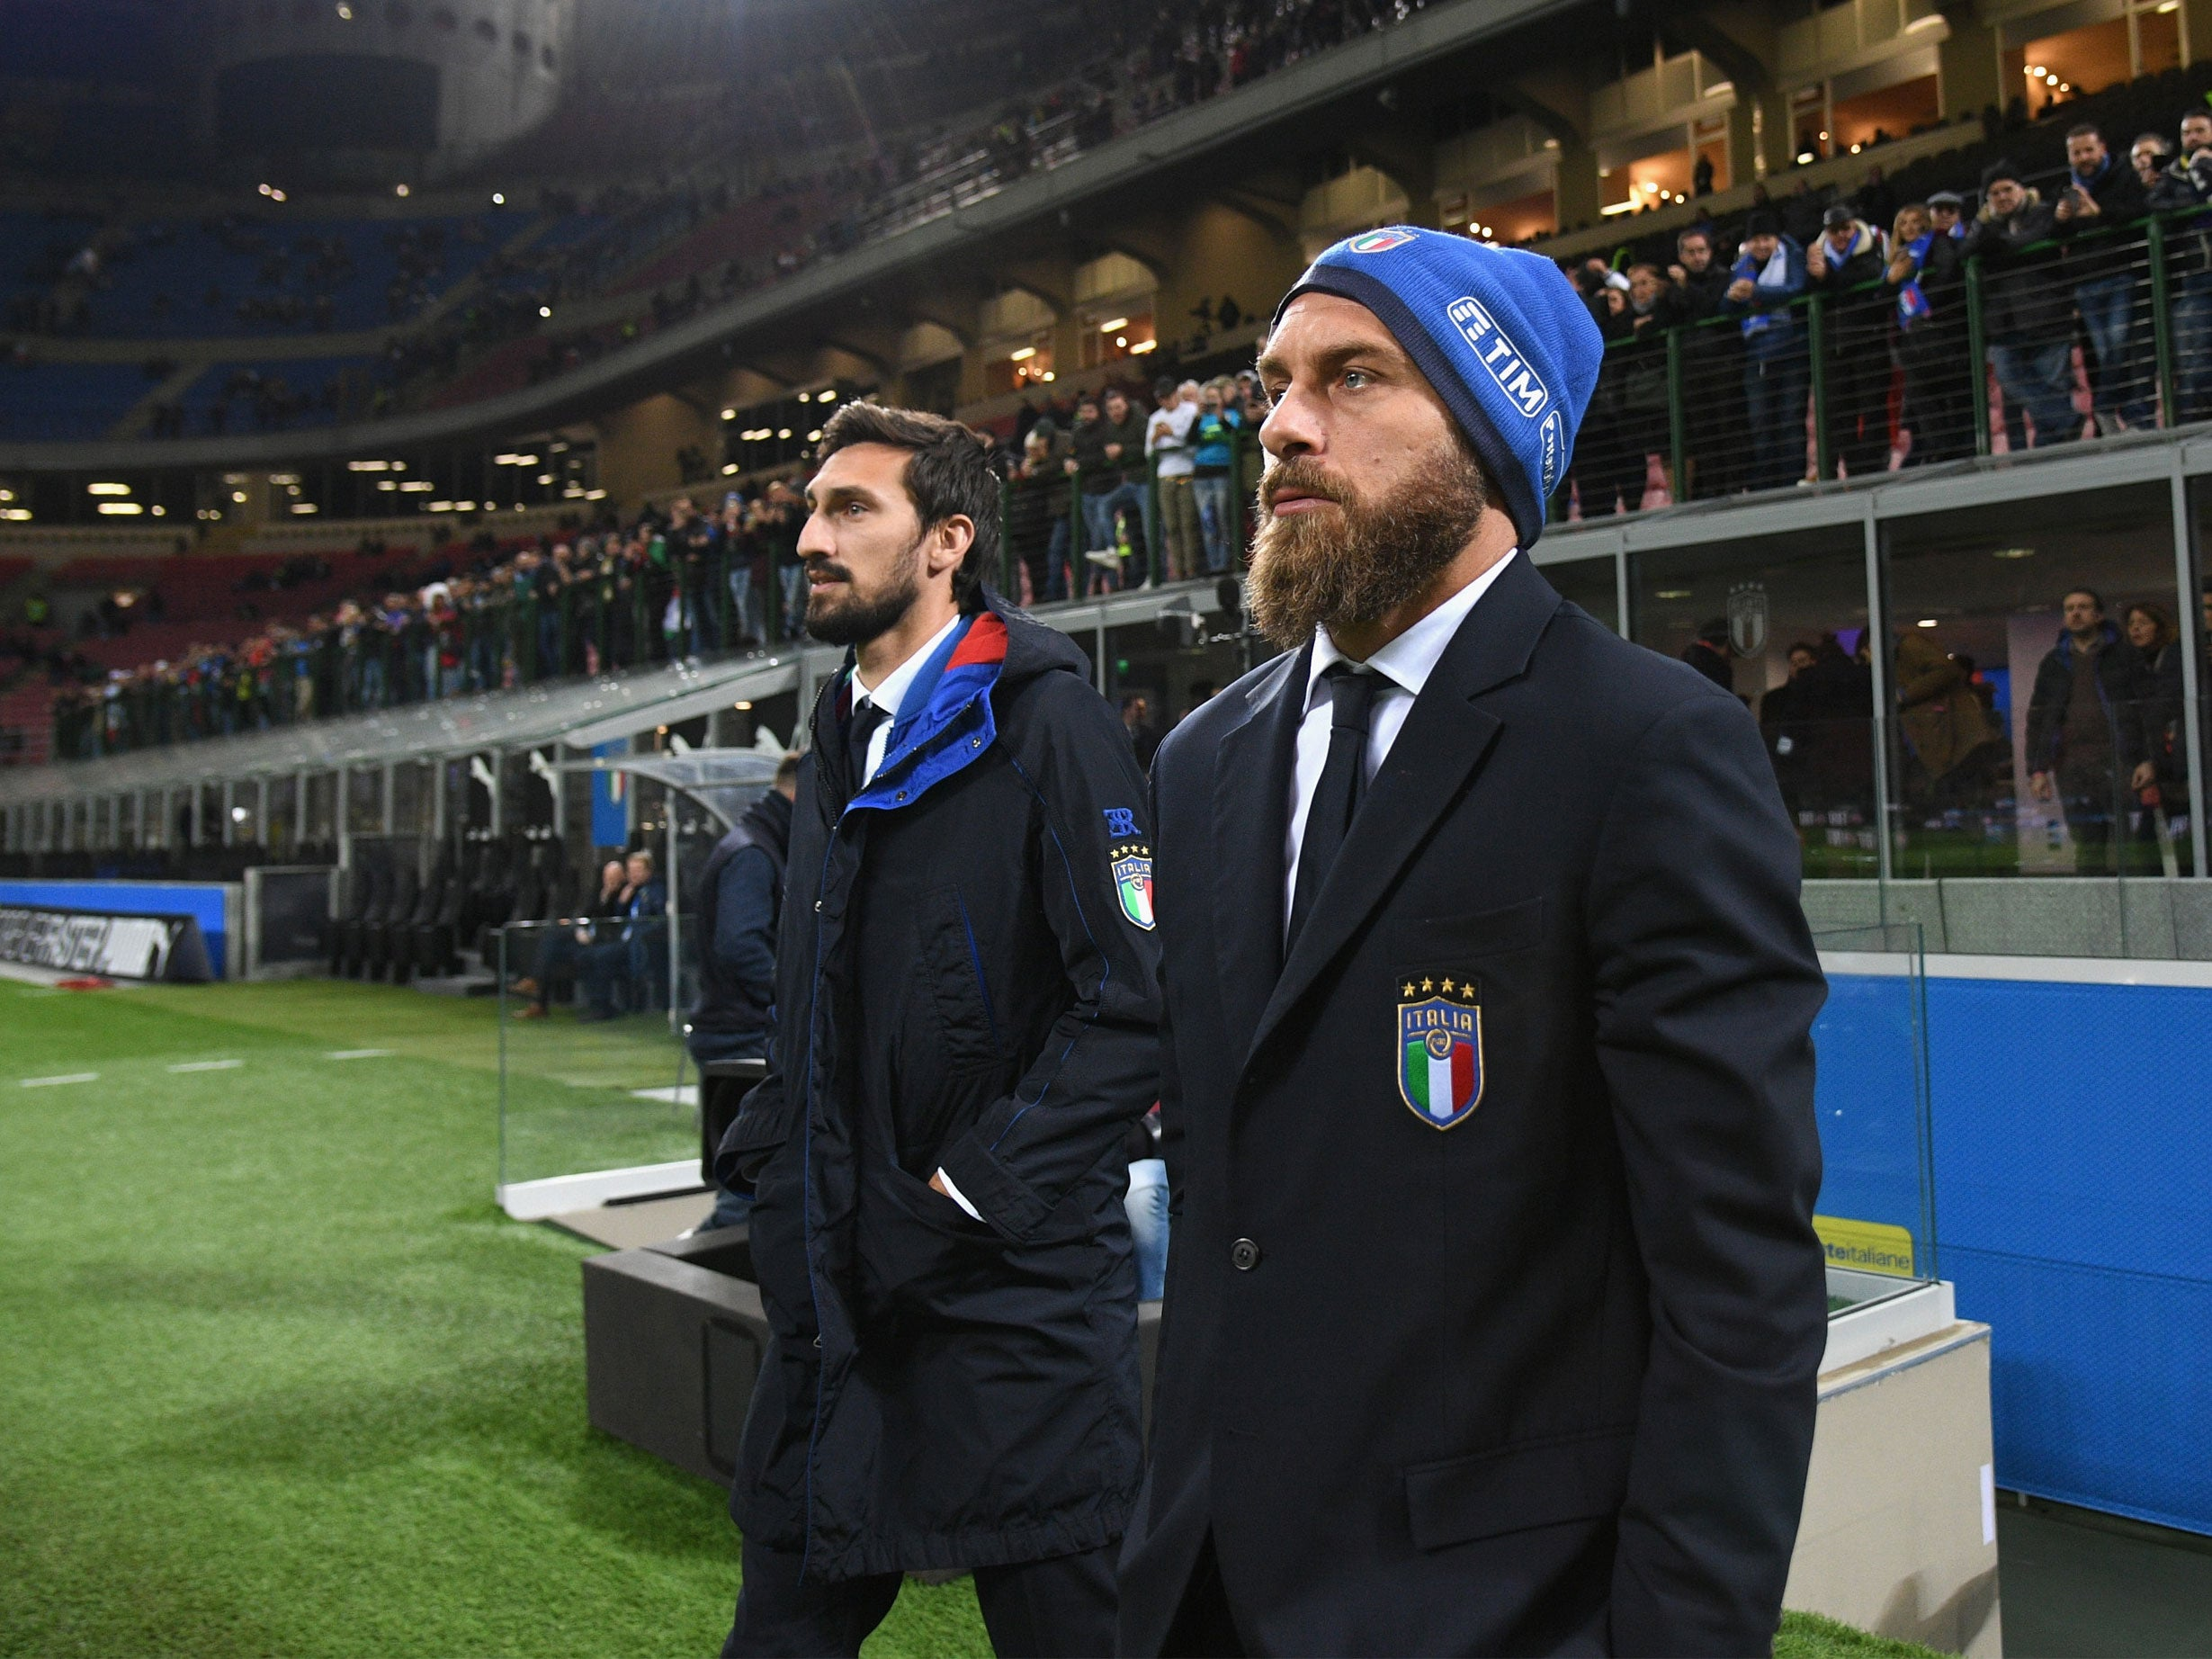 What Italy s Daniele de Rossi said when asked to warm up during